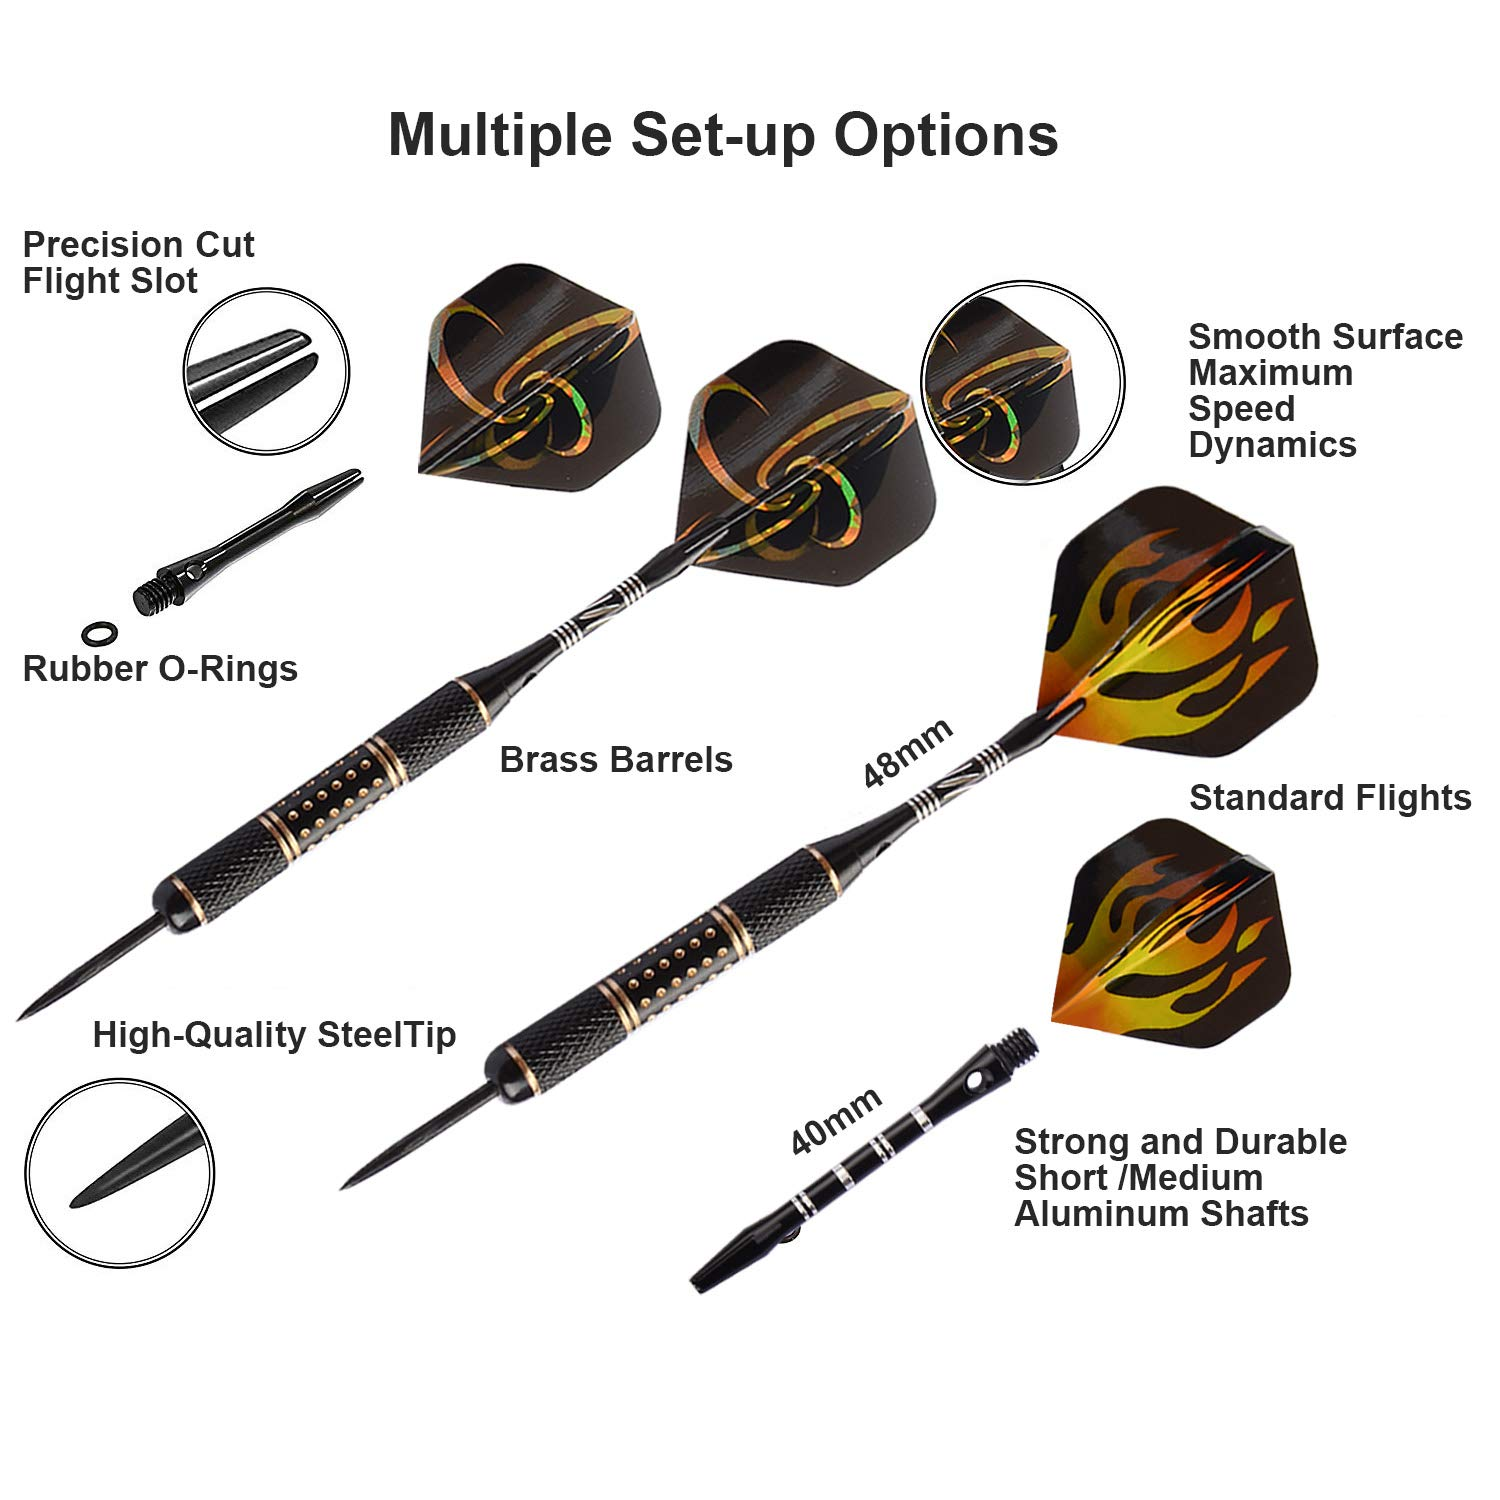 Migargle Professional Steel Tip Darts Set + 12 Dart Shafts Aluminum 2 Sizes + 6 Brass Barrels 26 Grams + 12 Flights + 4 Style Flights + Darts Sharpener +Darts Tool and Case